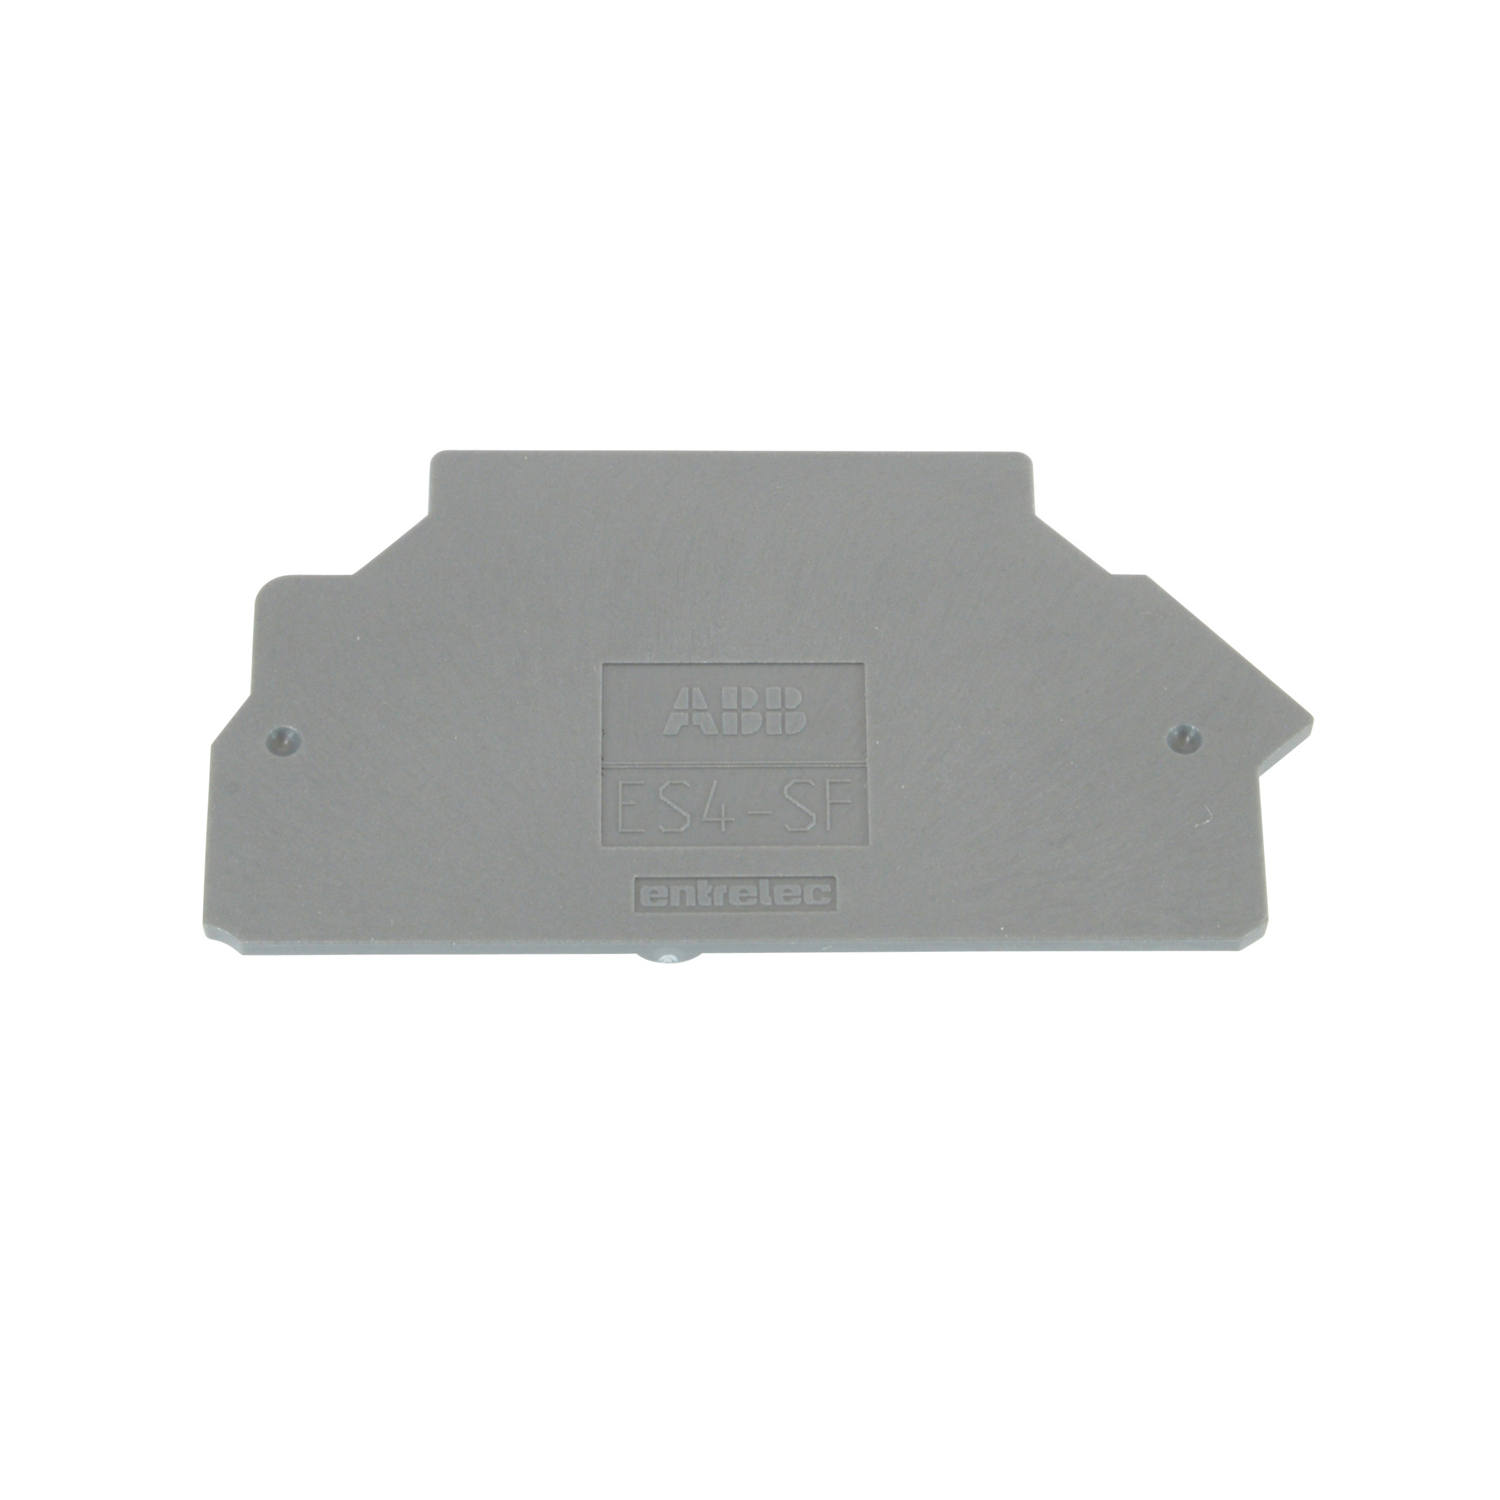 ABB,1SNK508960R0000,ABB 1SNK508960R0000 End Section, For Use With SNK Screw Clamp Terminal Blocks, Polyamide, Dark Grey